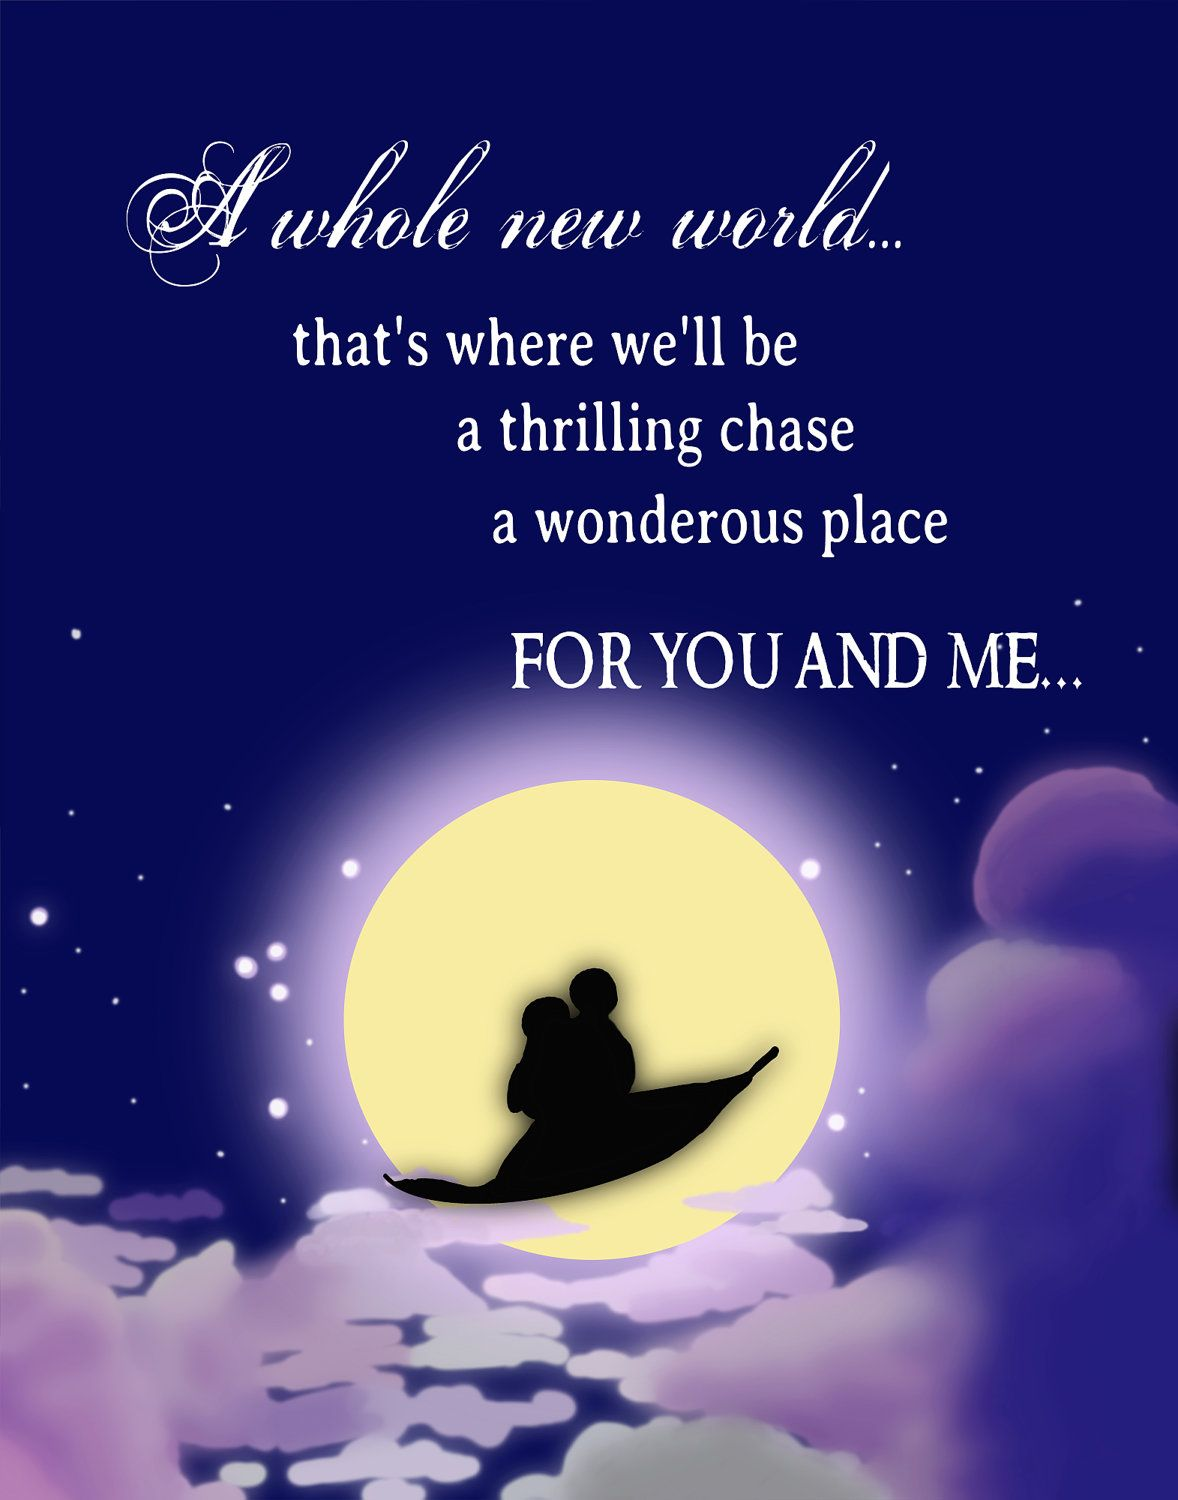 disney princess aladdin romantic quote by studiomarshallarts